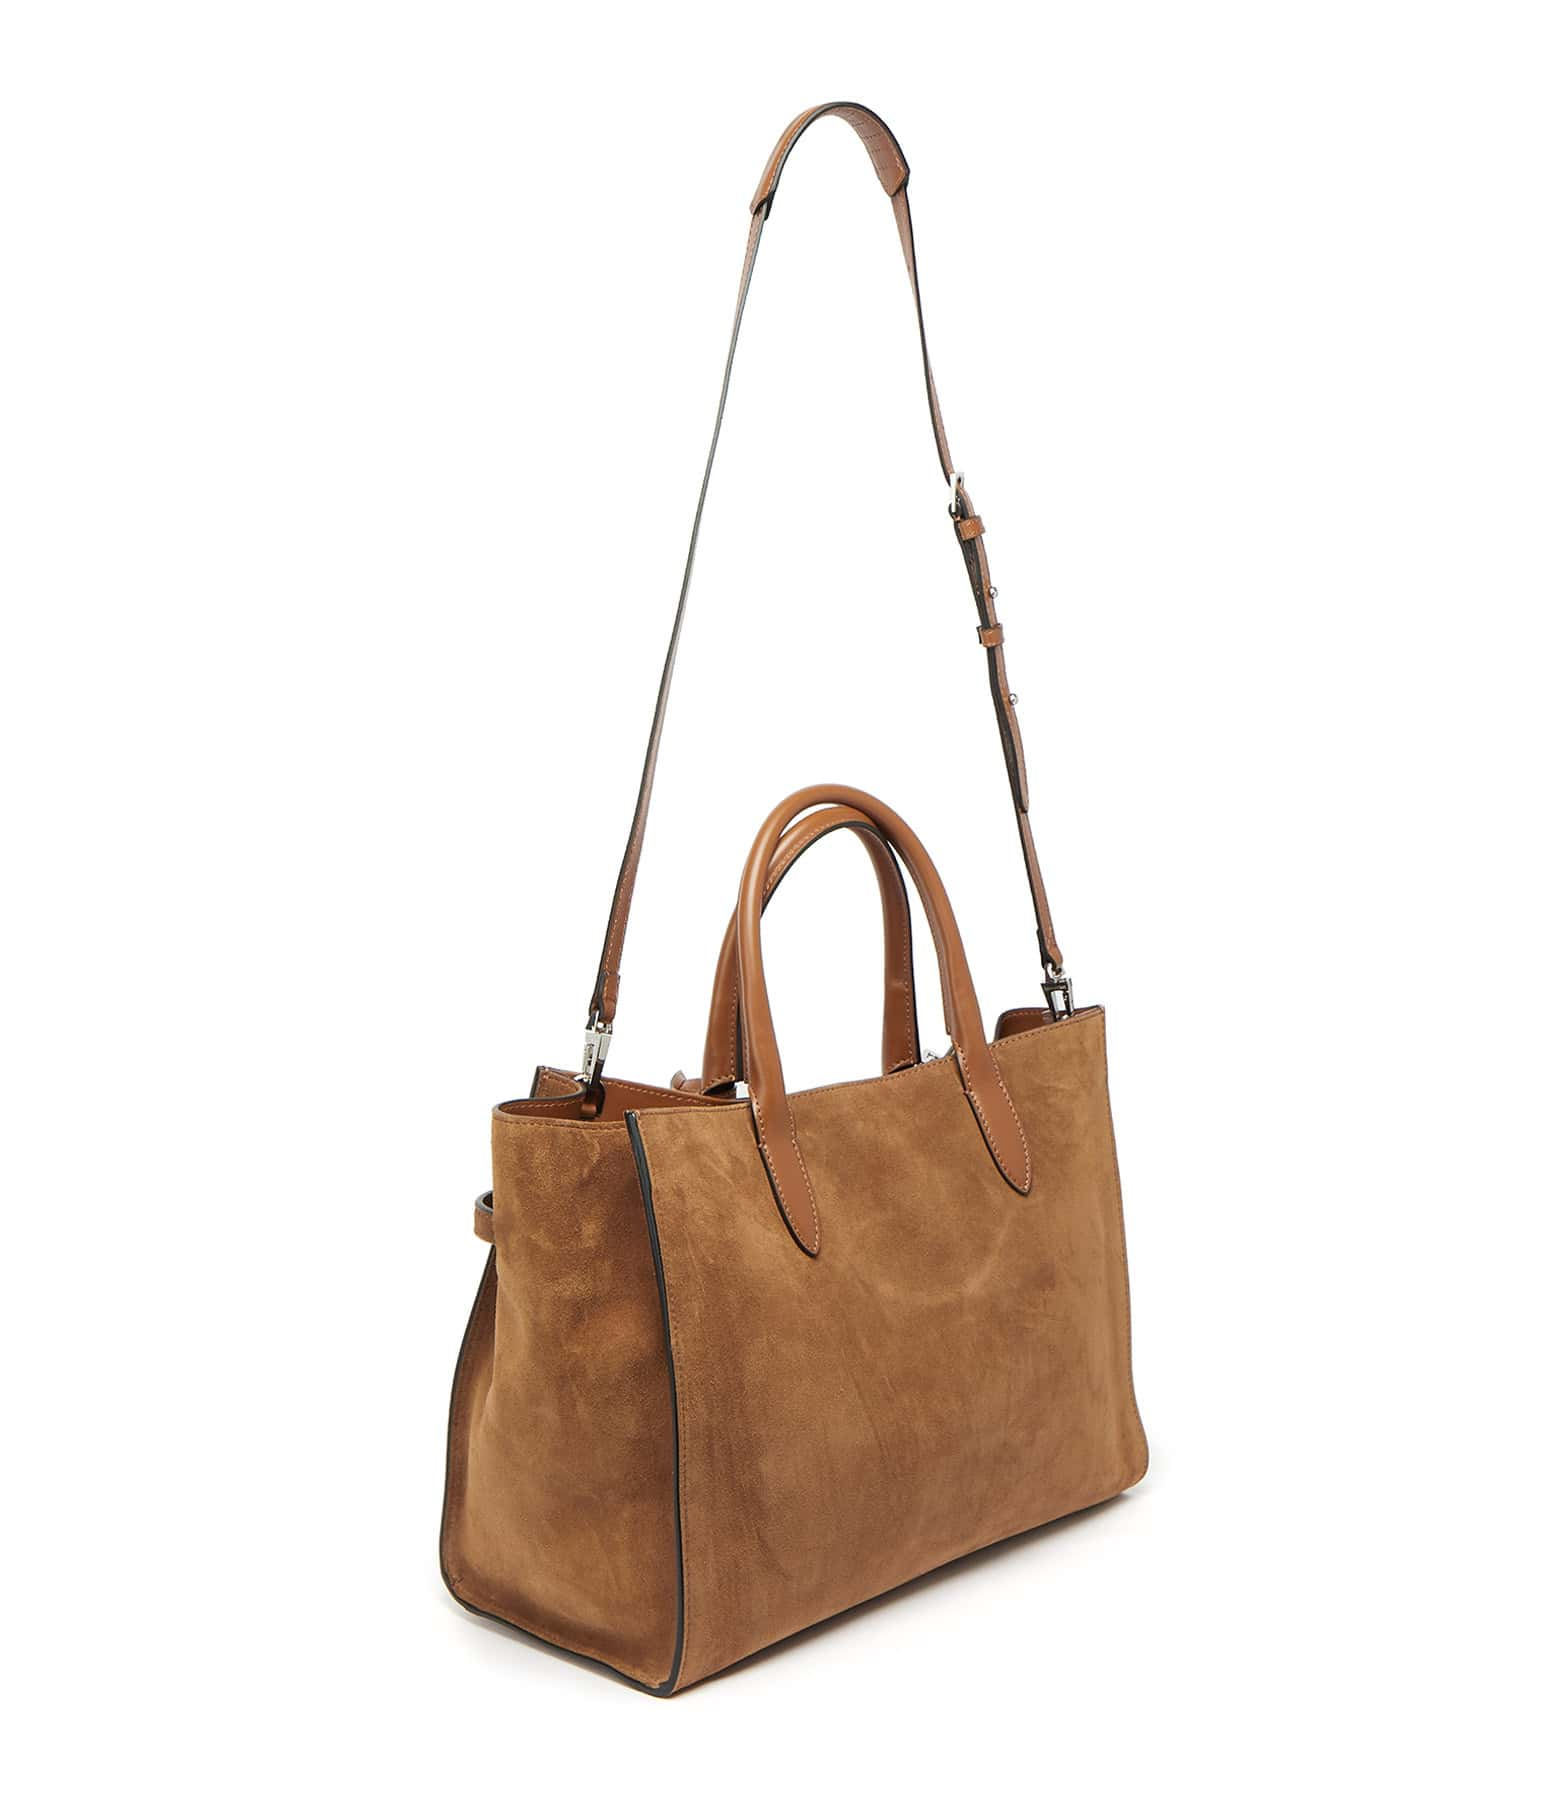 ZADIG & VOLTAIRE - Sac Candide Large Cuir Cognac